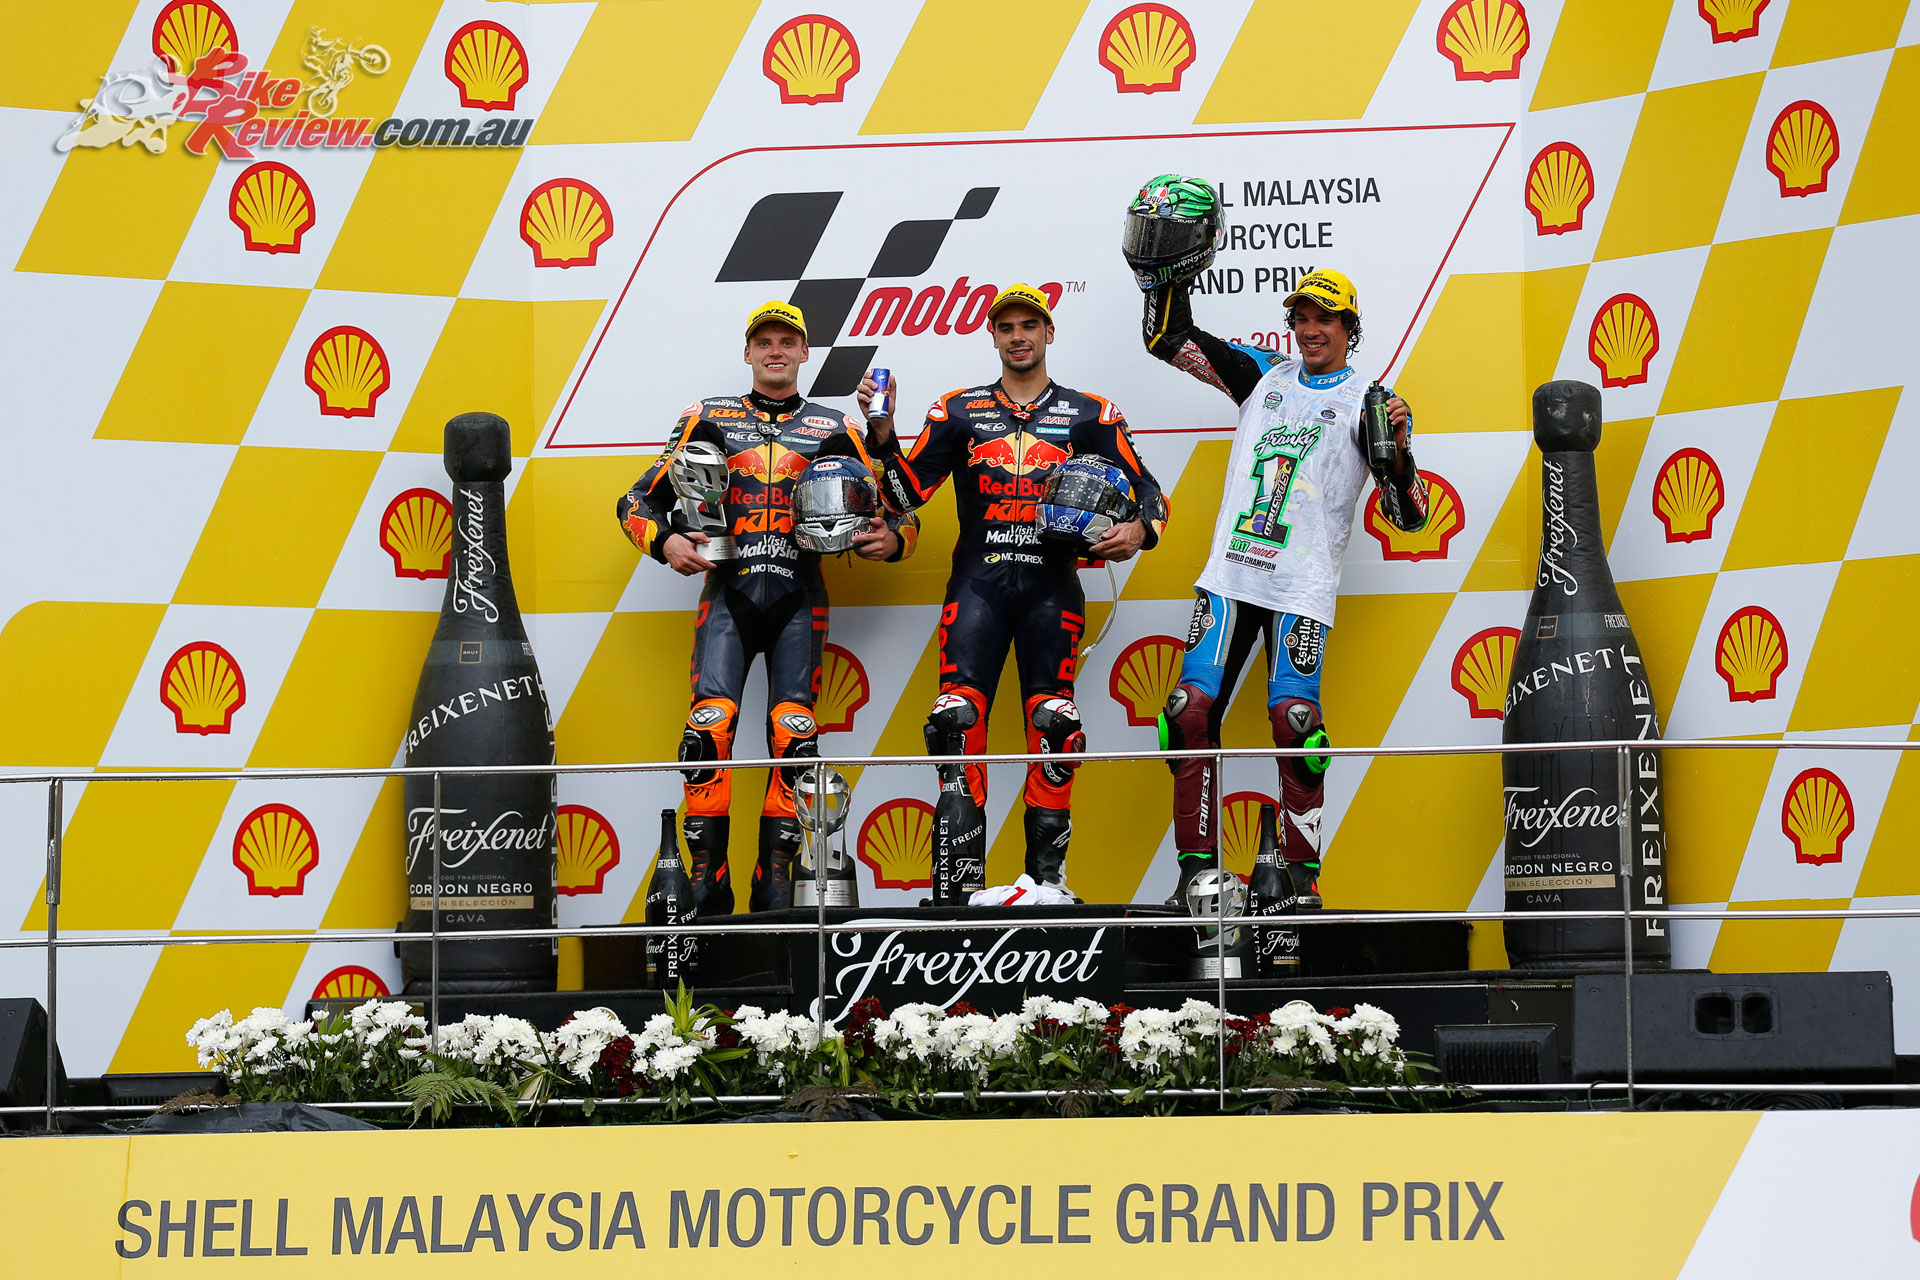 The Moto2 Podium once again saw KTM take the 1-2